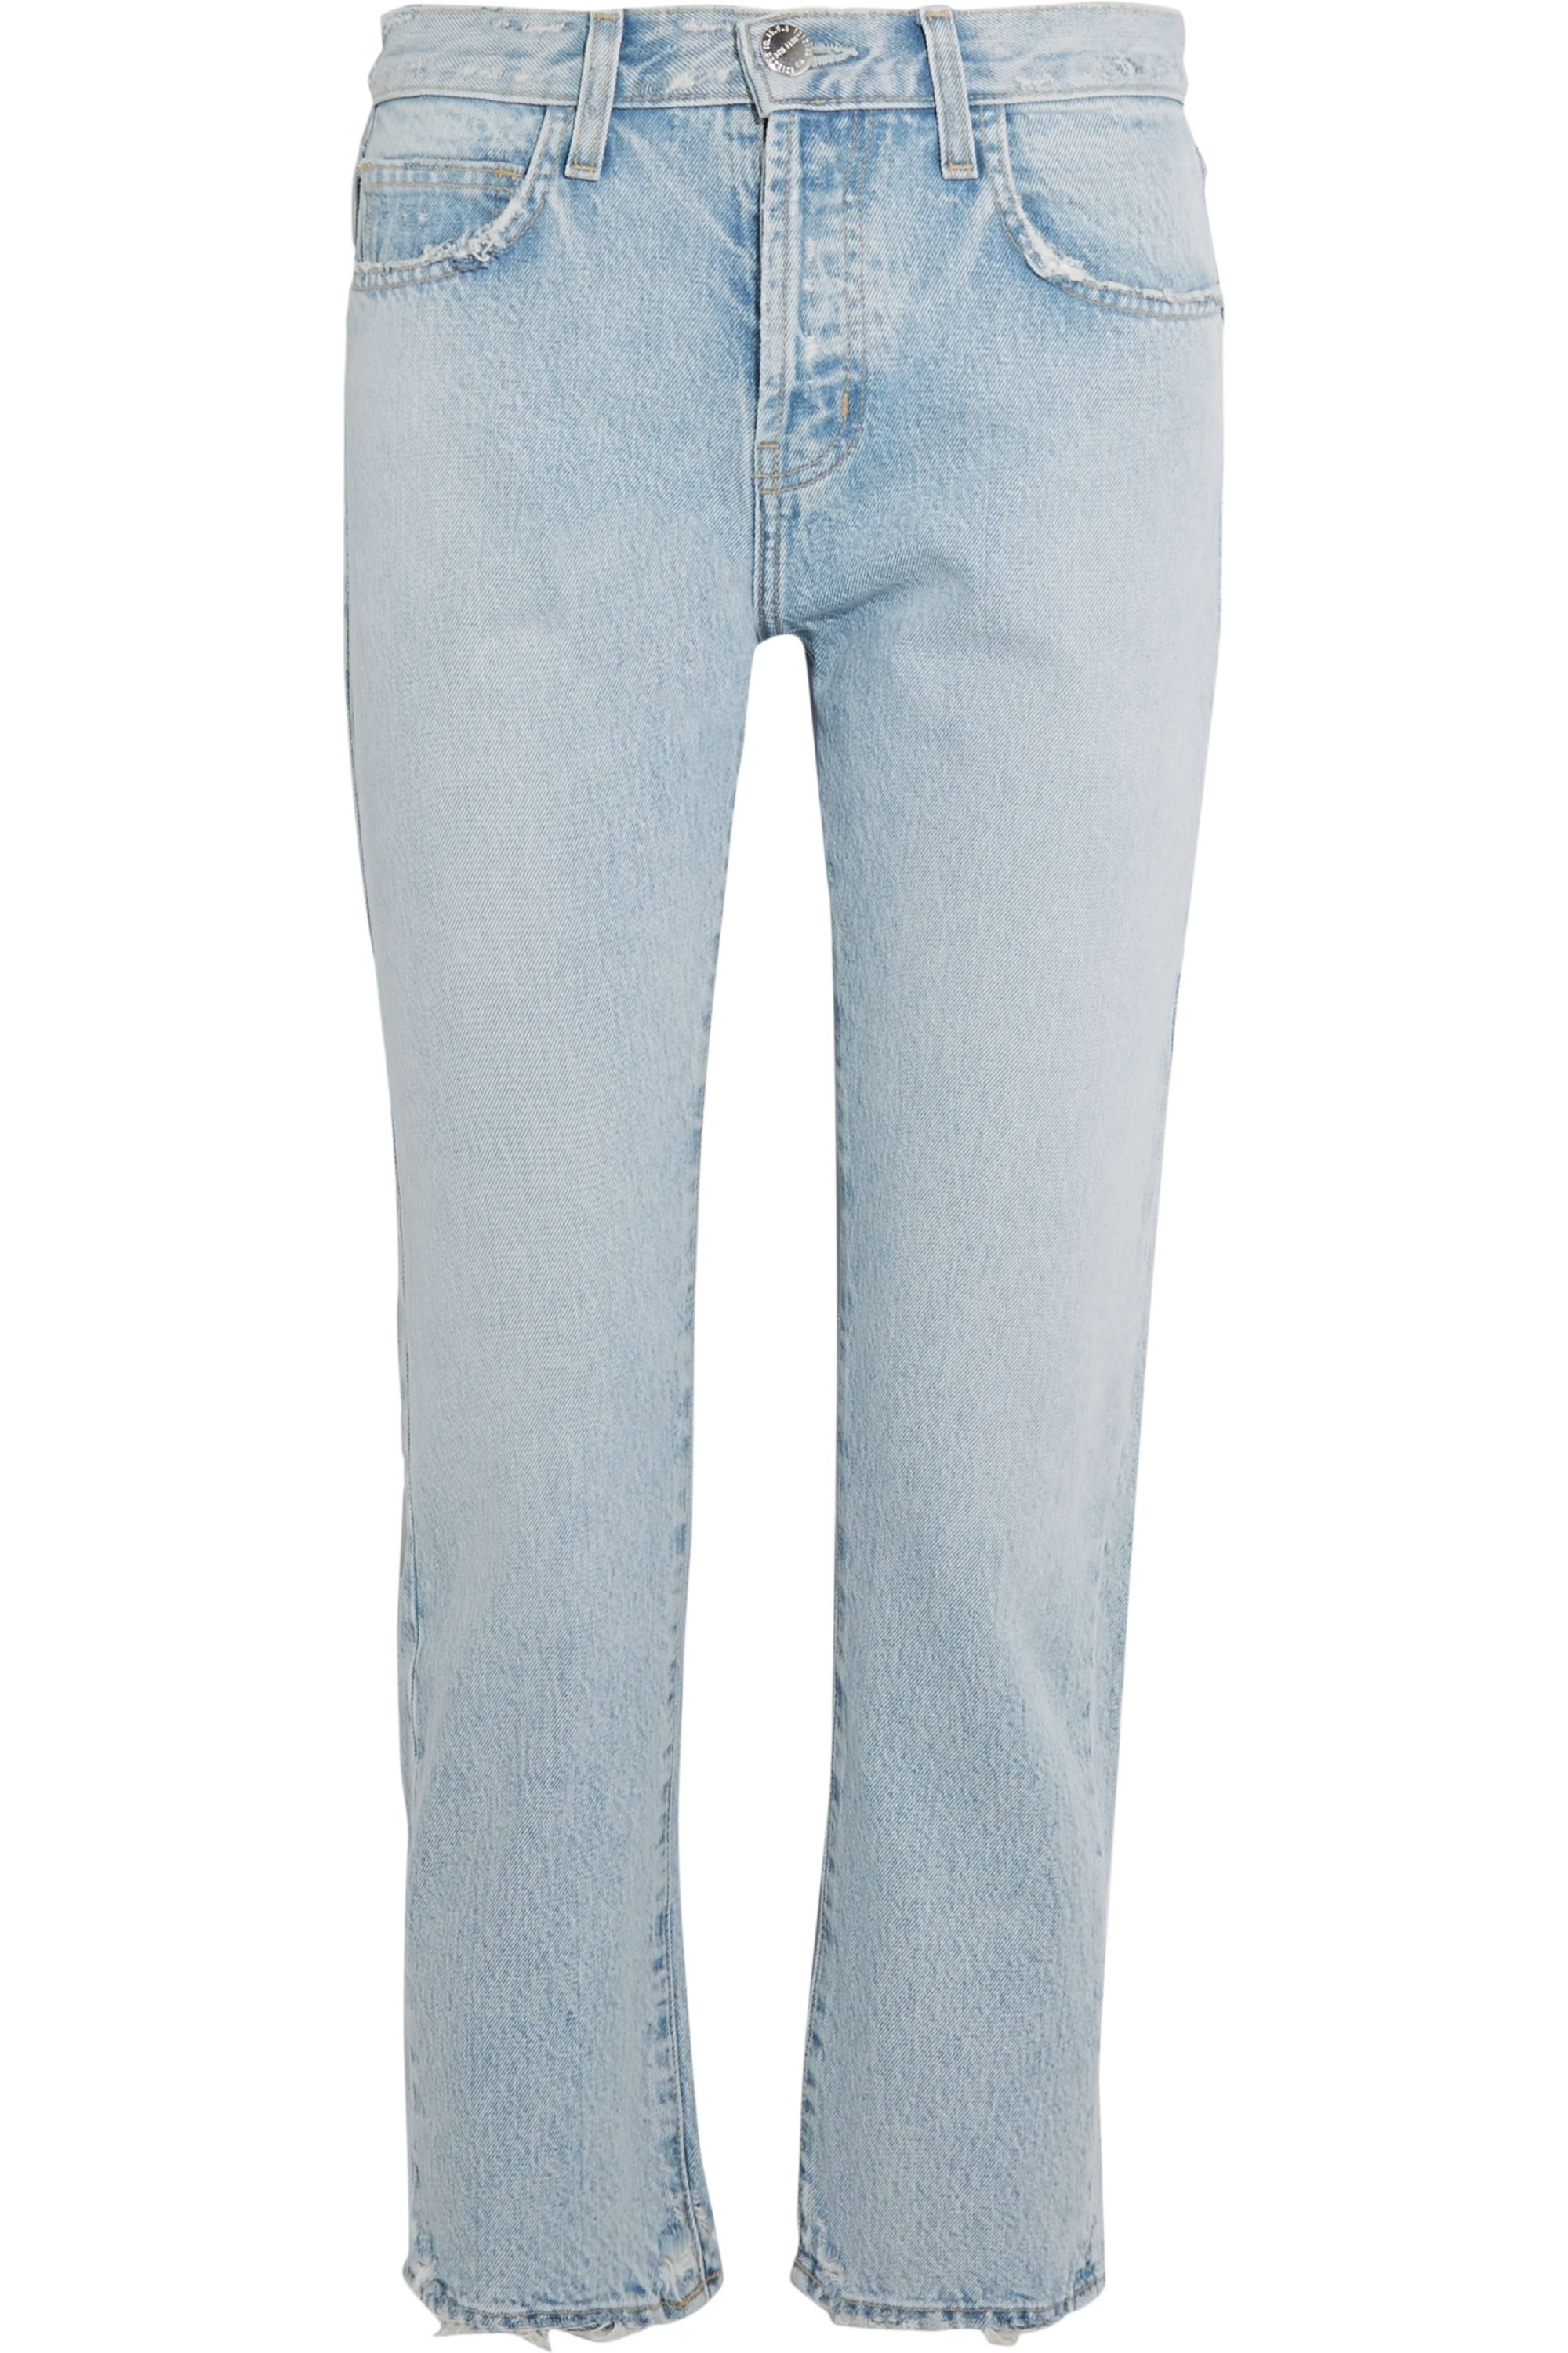 Current/Elliott The Original Straight cropped high-rise jeans